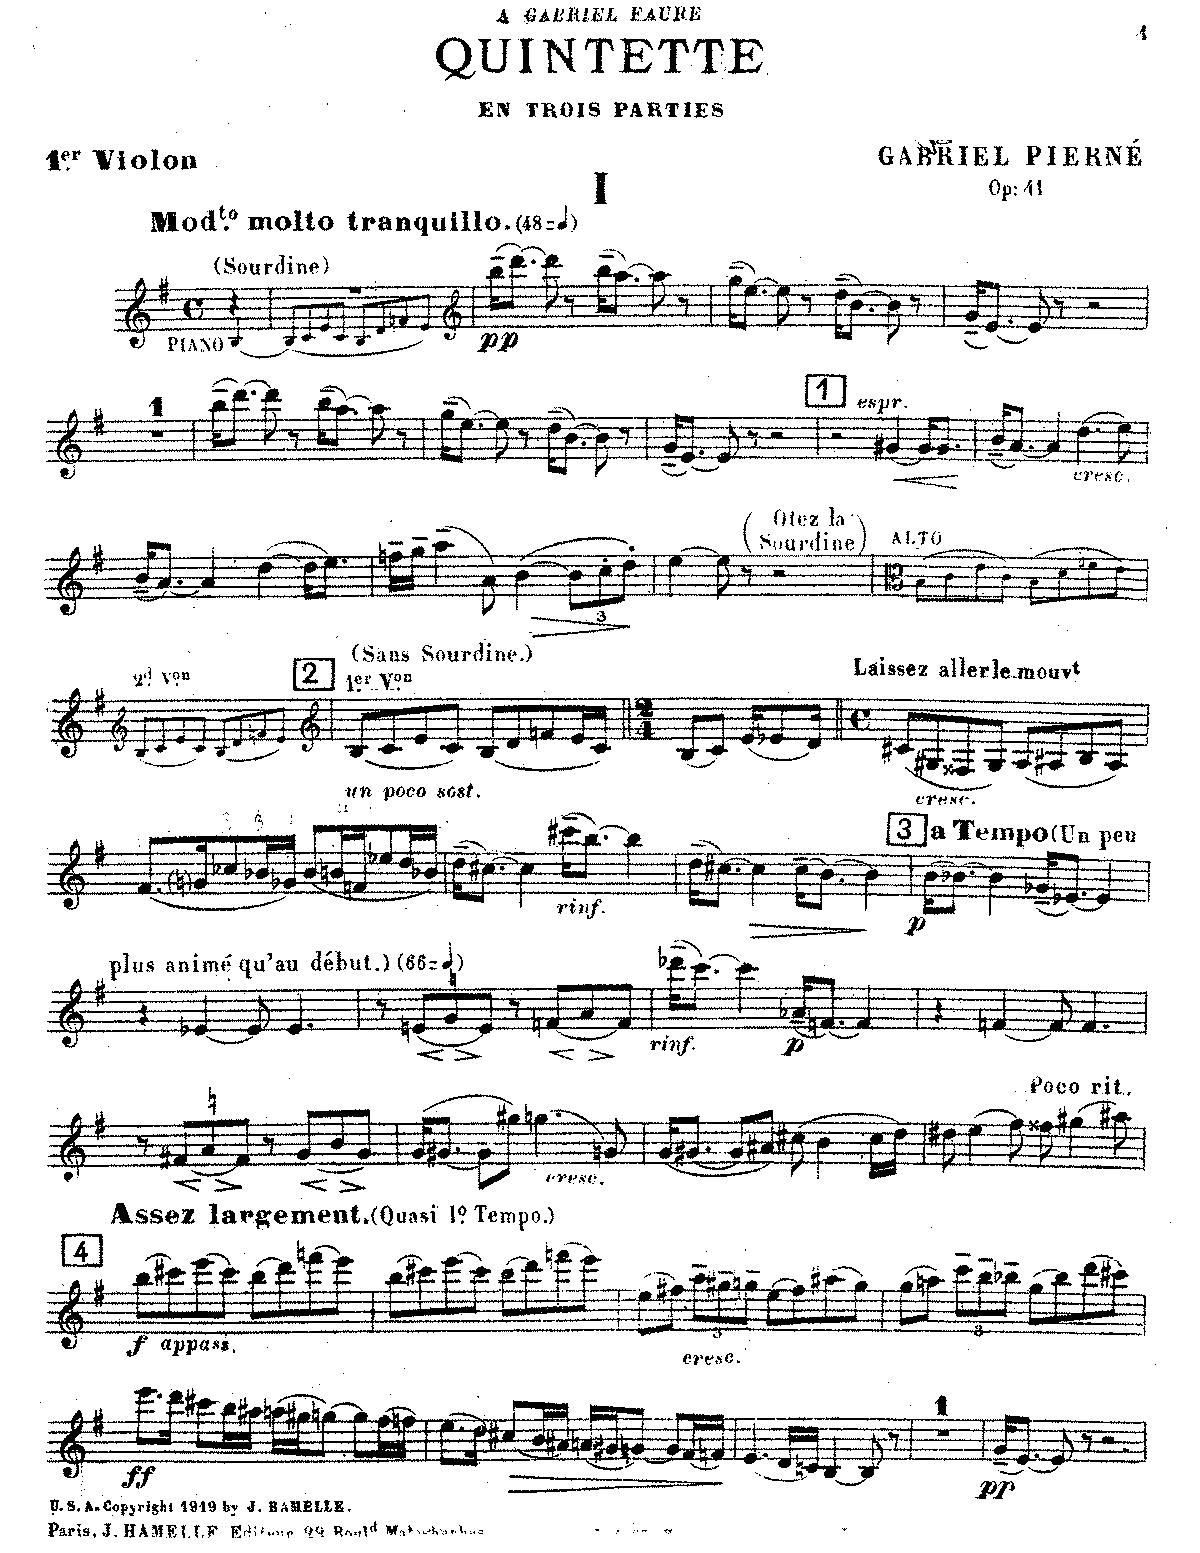 PMLP69700-Pierne Piano Quintet Op-41 string parts.pdf